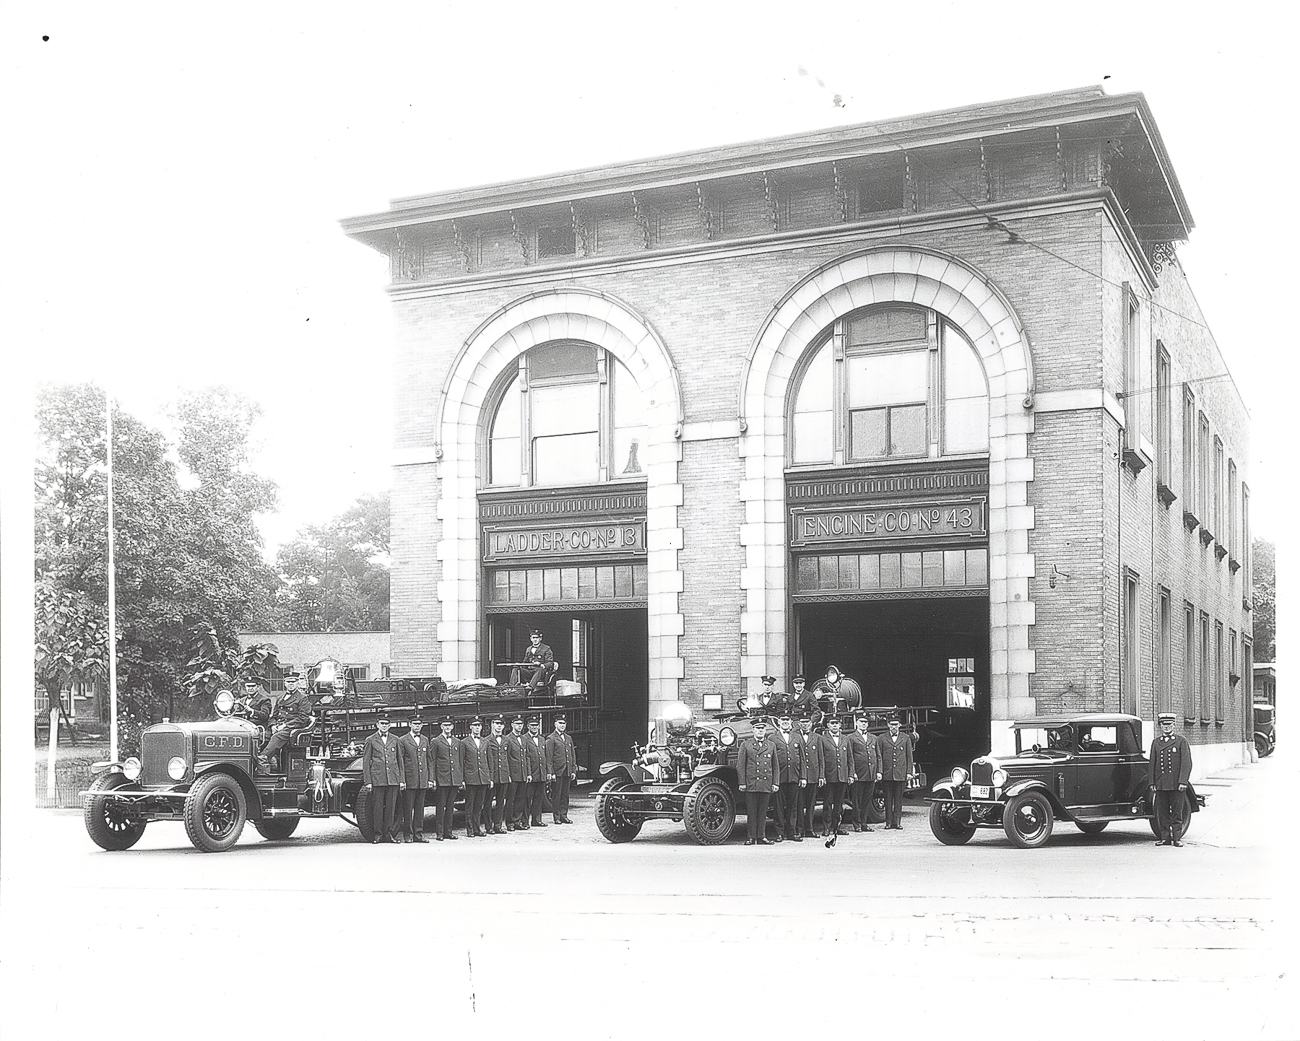 The firehouse was built in the late-1800s and was designed by popular architect Harry Hake. When it originally opened, horses were kept onsite to provide mobility of service. Years later, Ahrens-Fox Co., which was located next door, suggested putting a gas-powered engine on their truck and ultimately revolutionized firefighting. The firehouse is believed to be among the earliest adopters of gas-powered fire brigades. / Image courtesy of Dane Heithaus // Published: 12.25.18